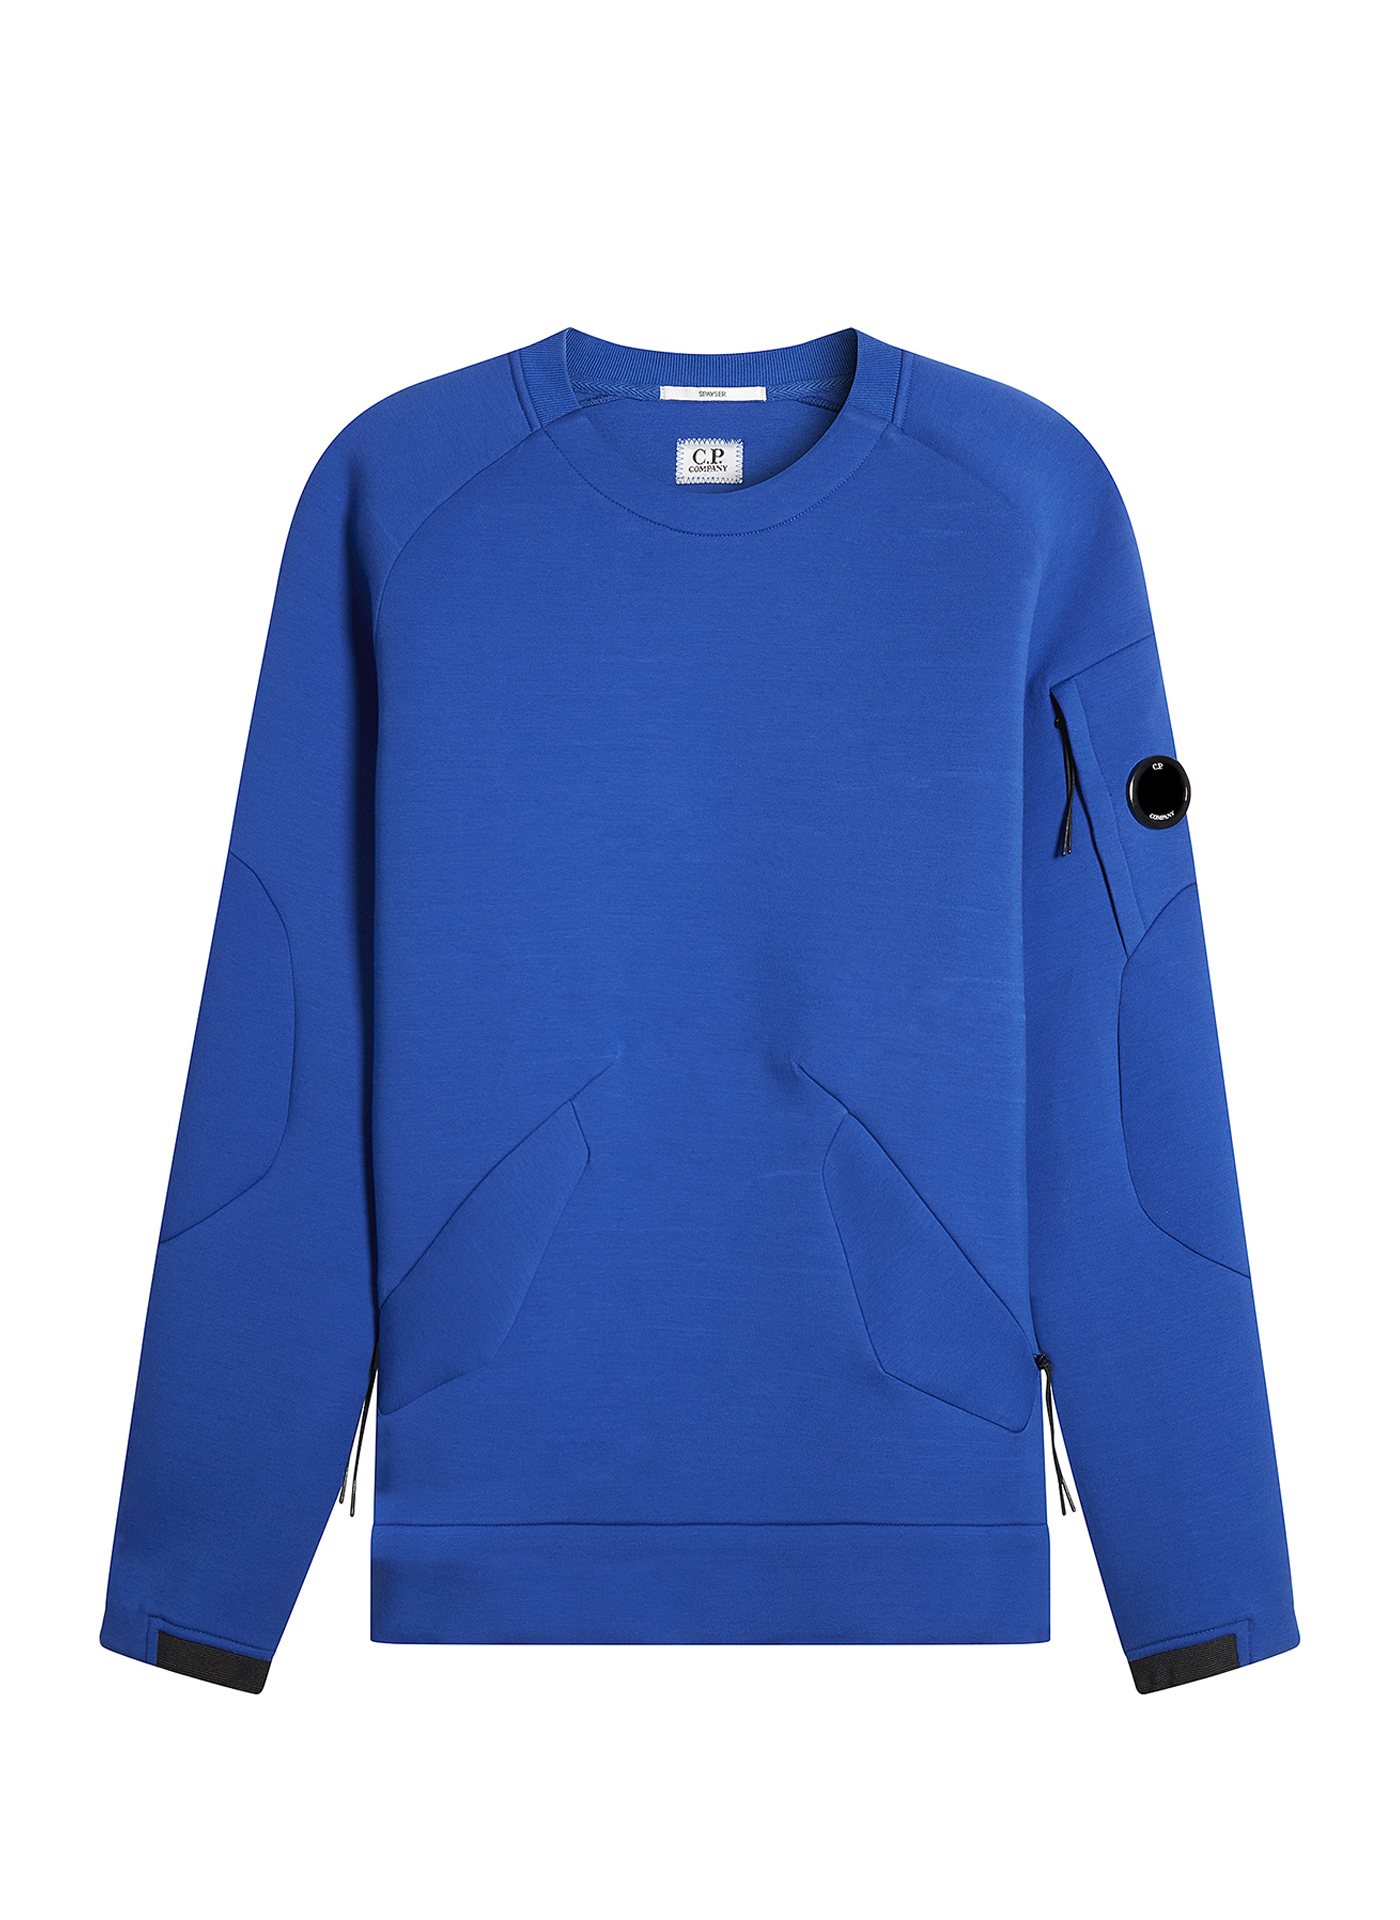 Blue C.P. Company Jumper on white background